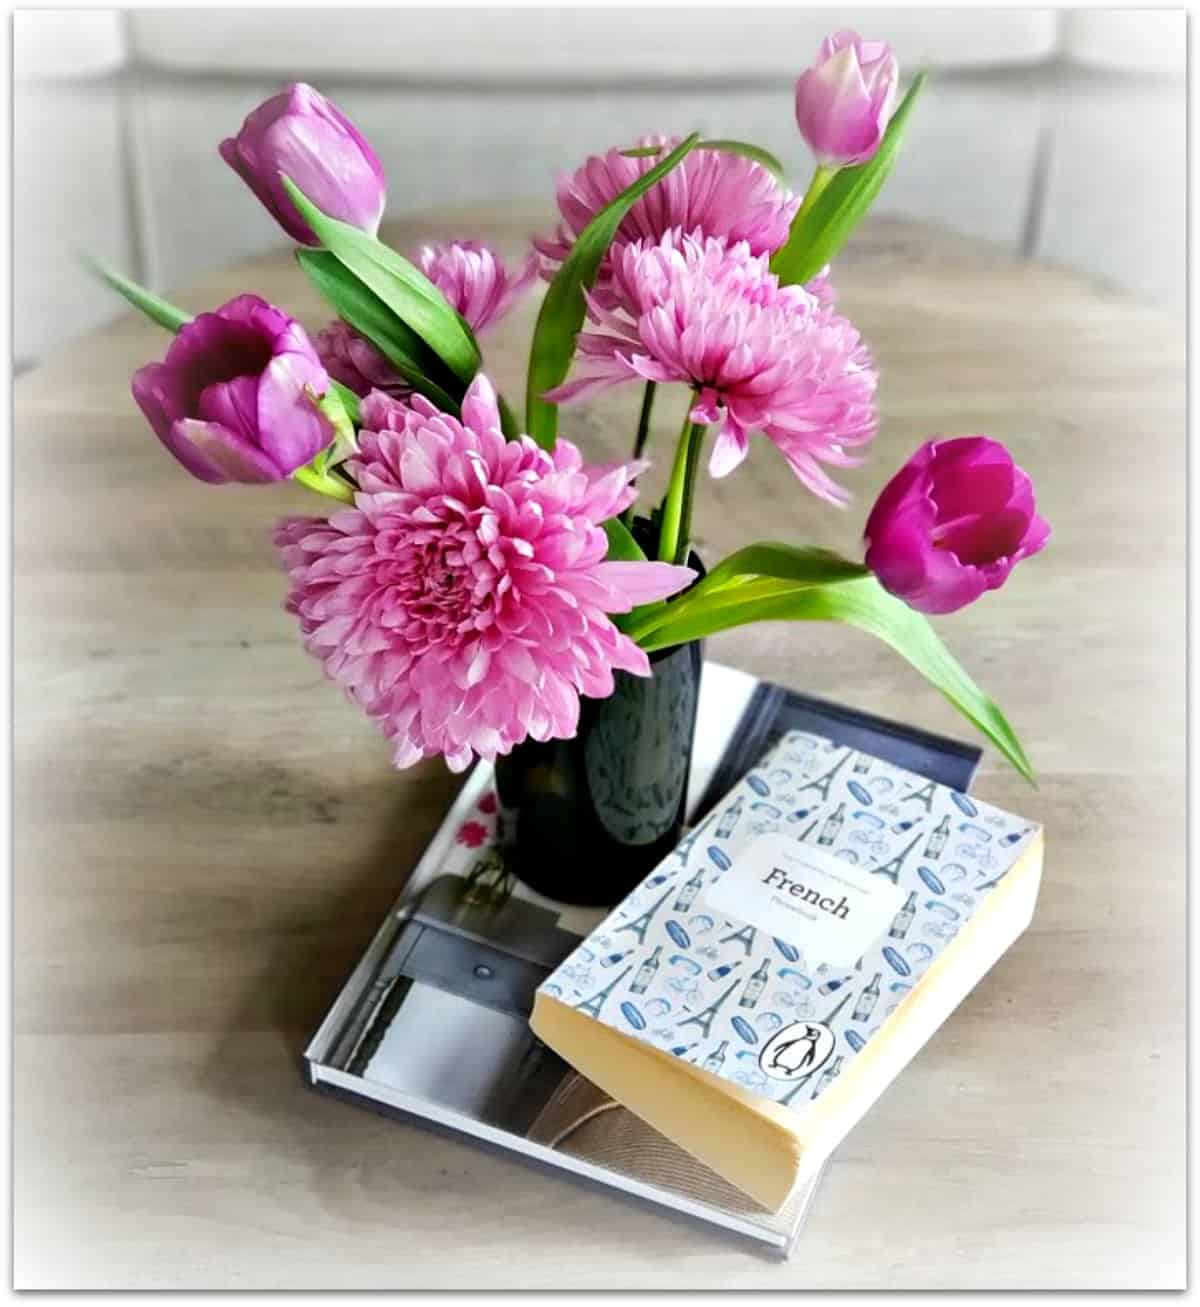 sending flowers is a thoughtful gesture - or is it!